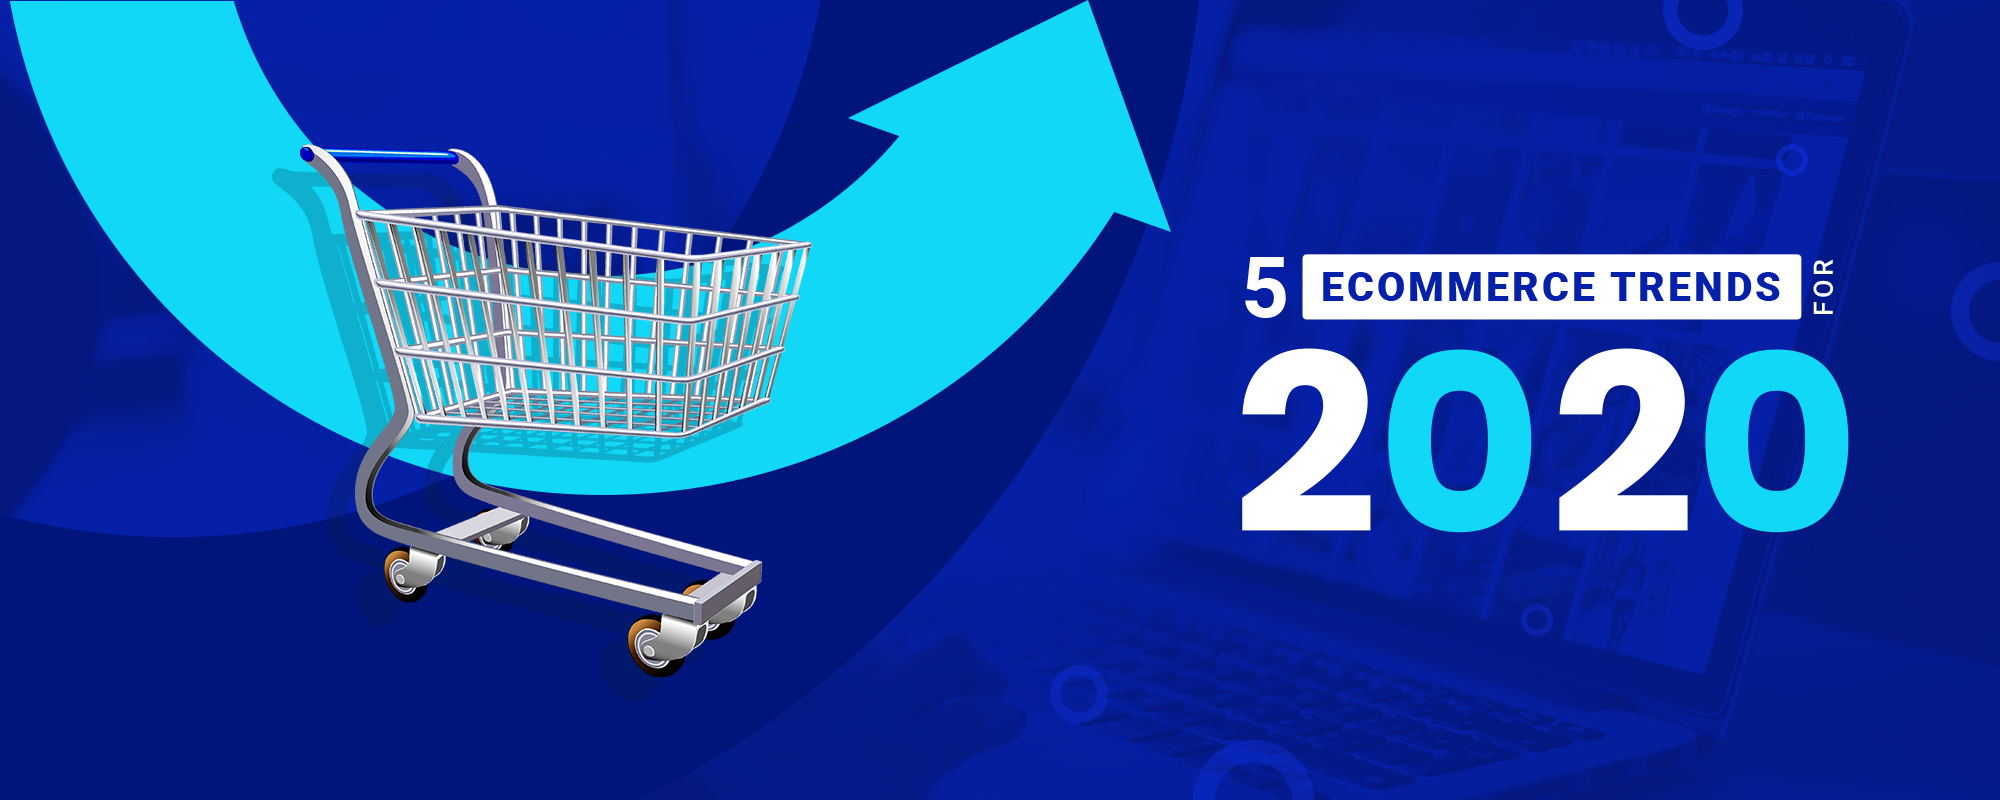 5 Ecommerce Trends for 2020